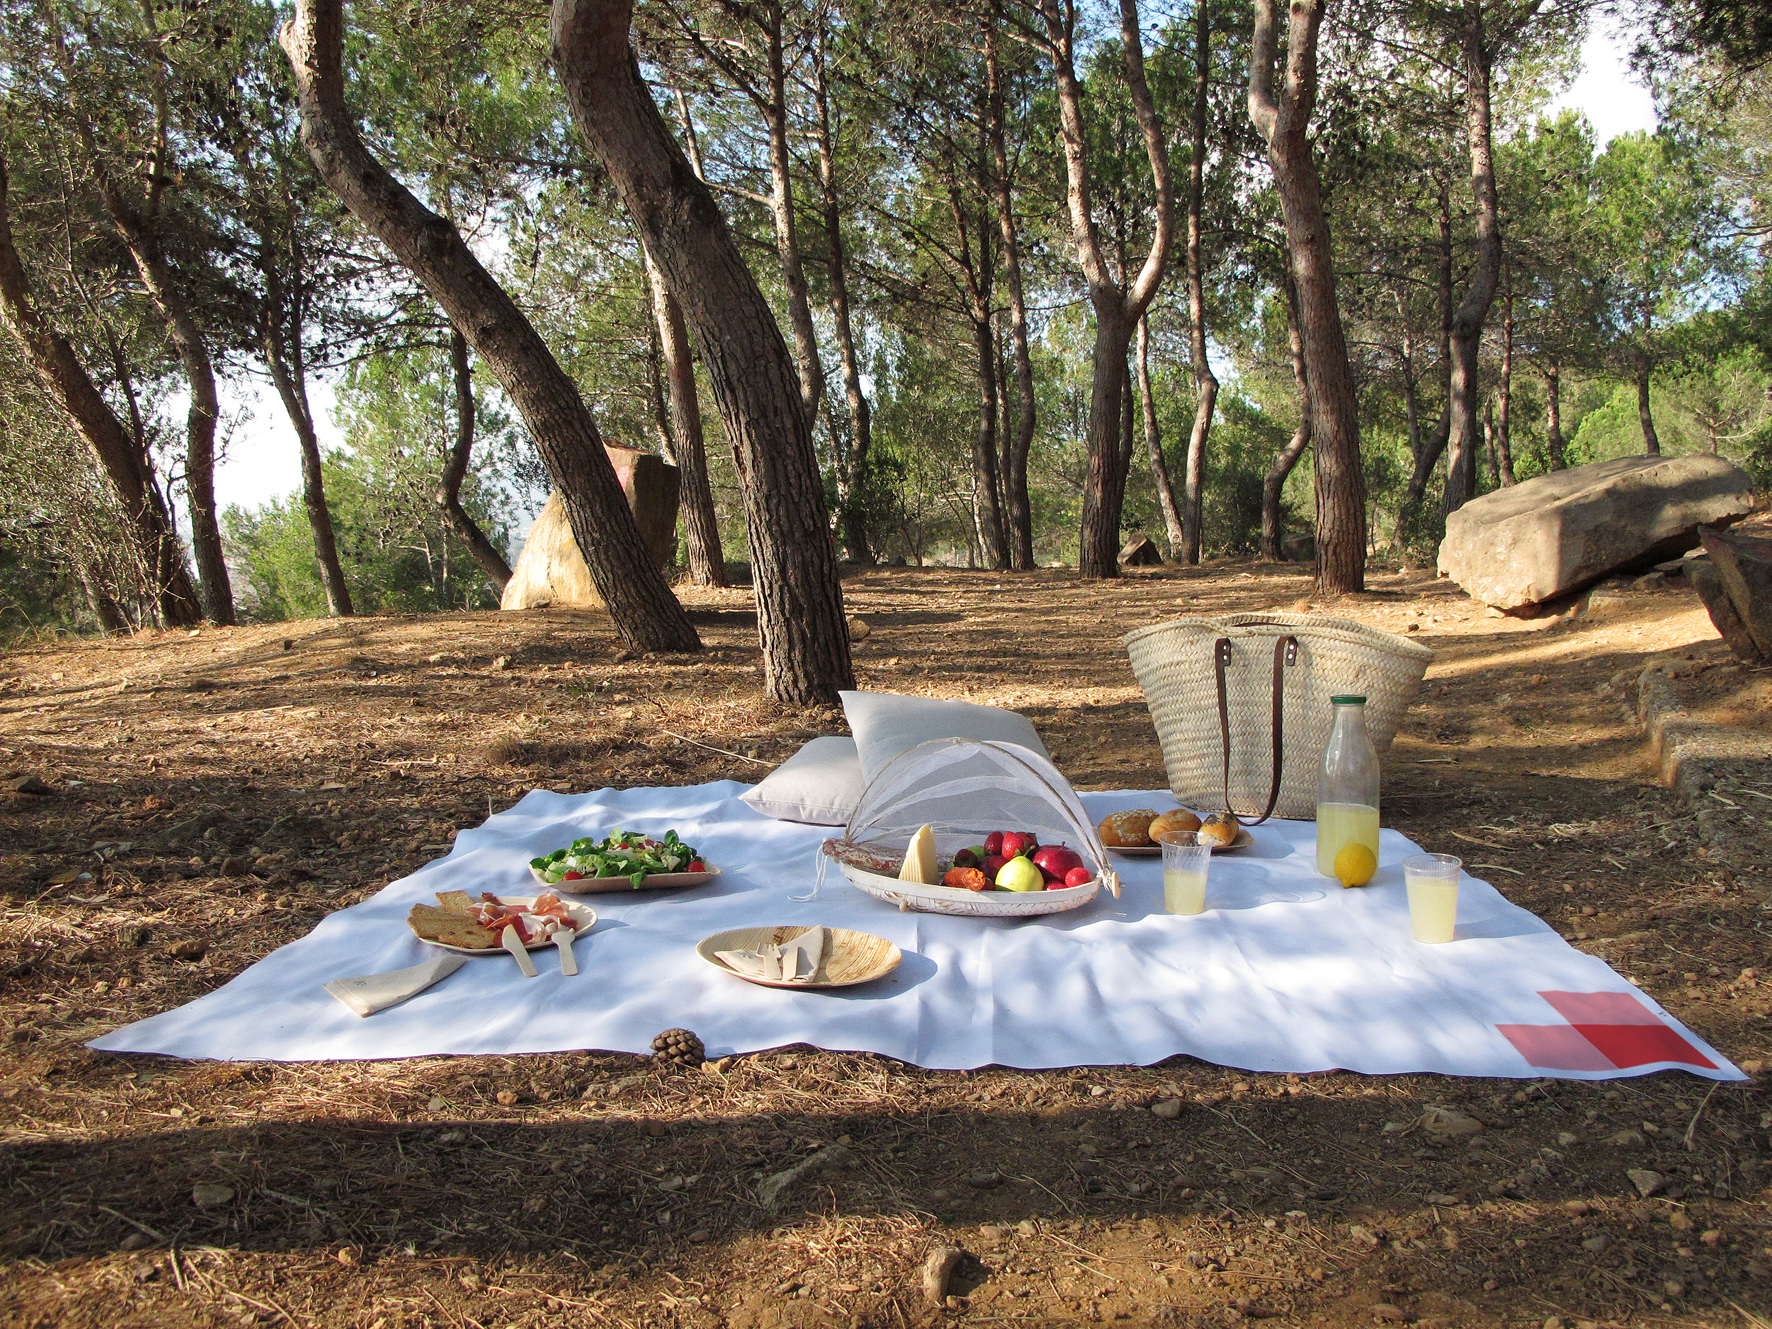 Picnic Barcelona | We deliver amazing picnics in the best spots! on